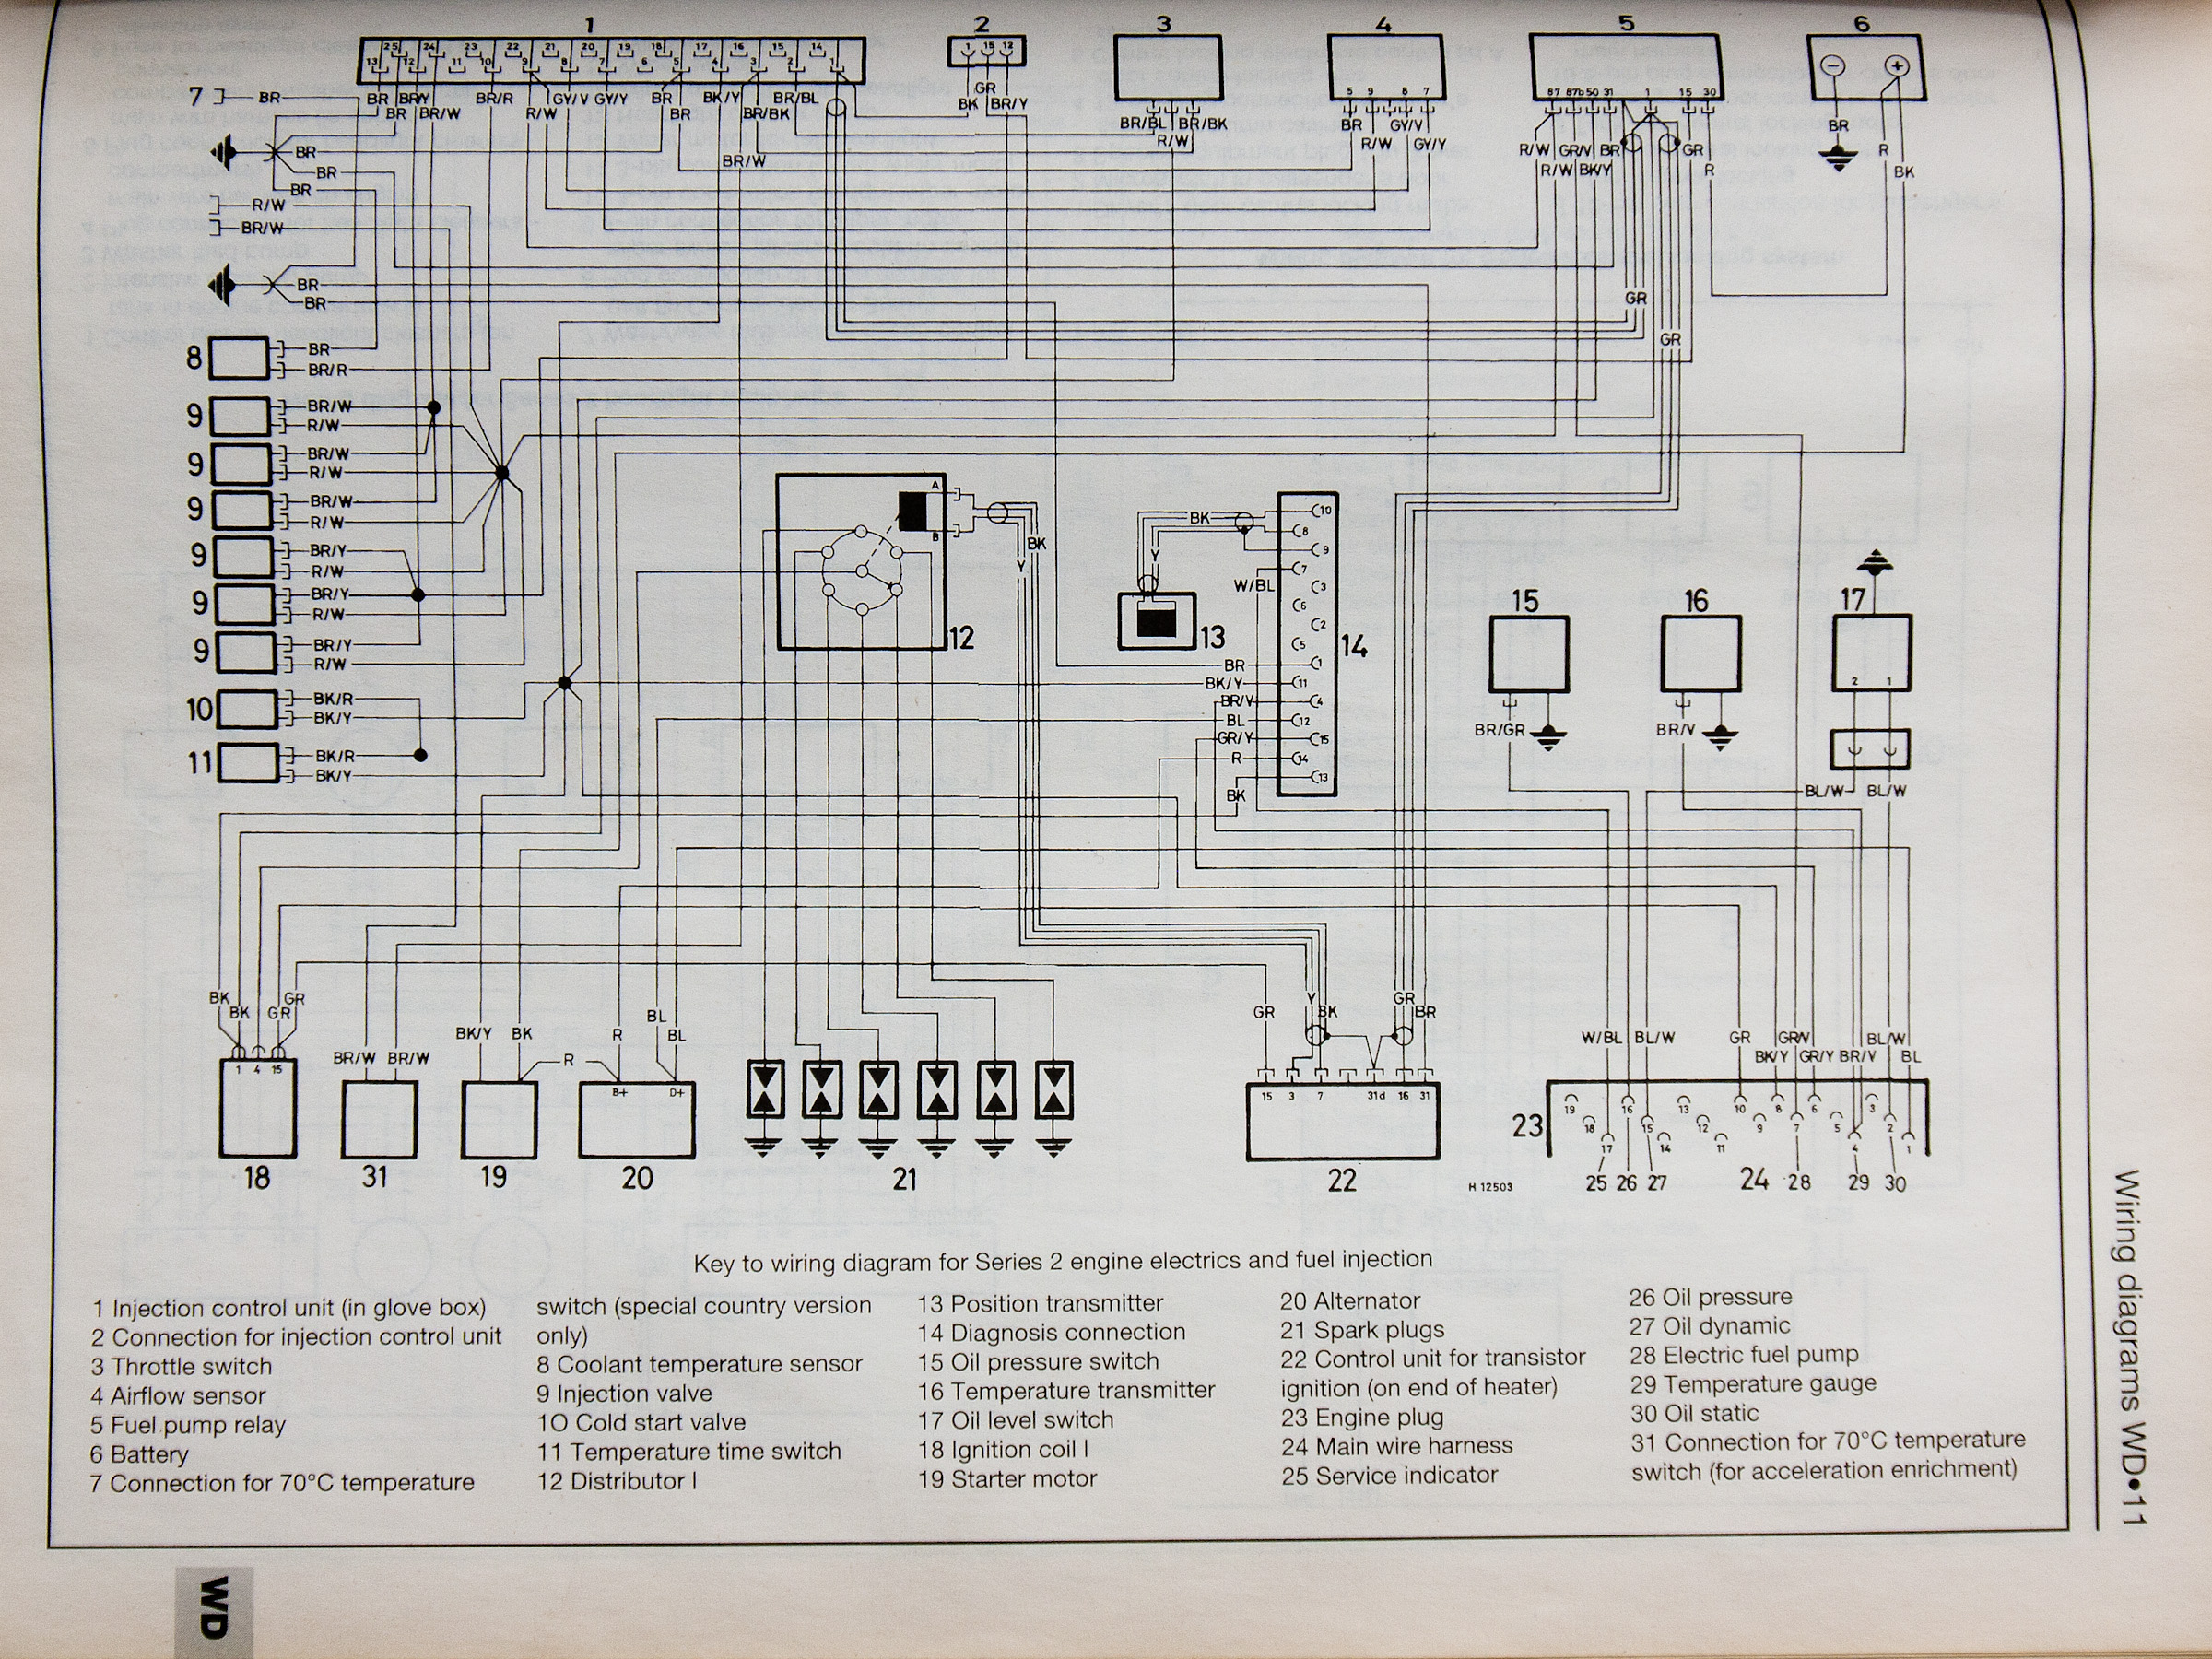 e30_ljetronic_001 e30_ljetronic_001 jpg e28 wiring diagram at crackthecode.co